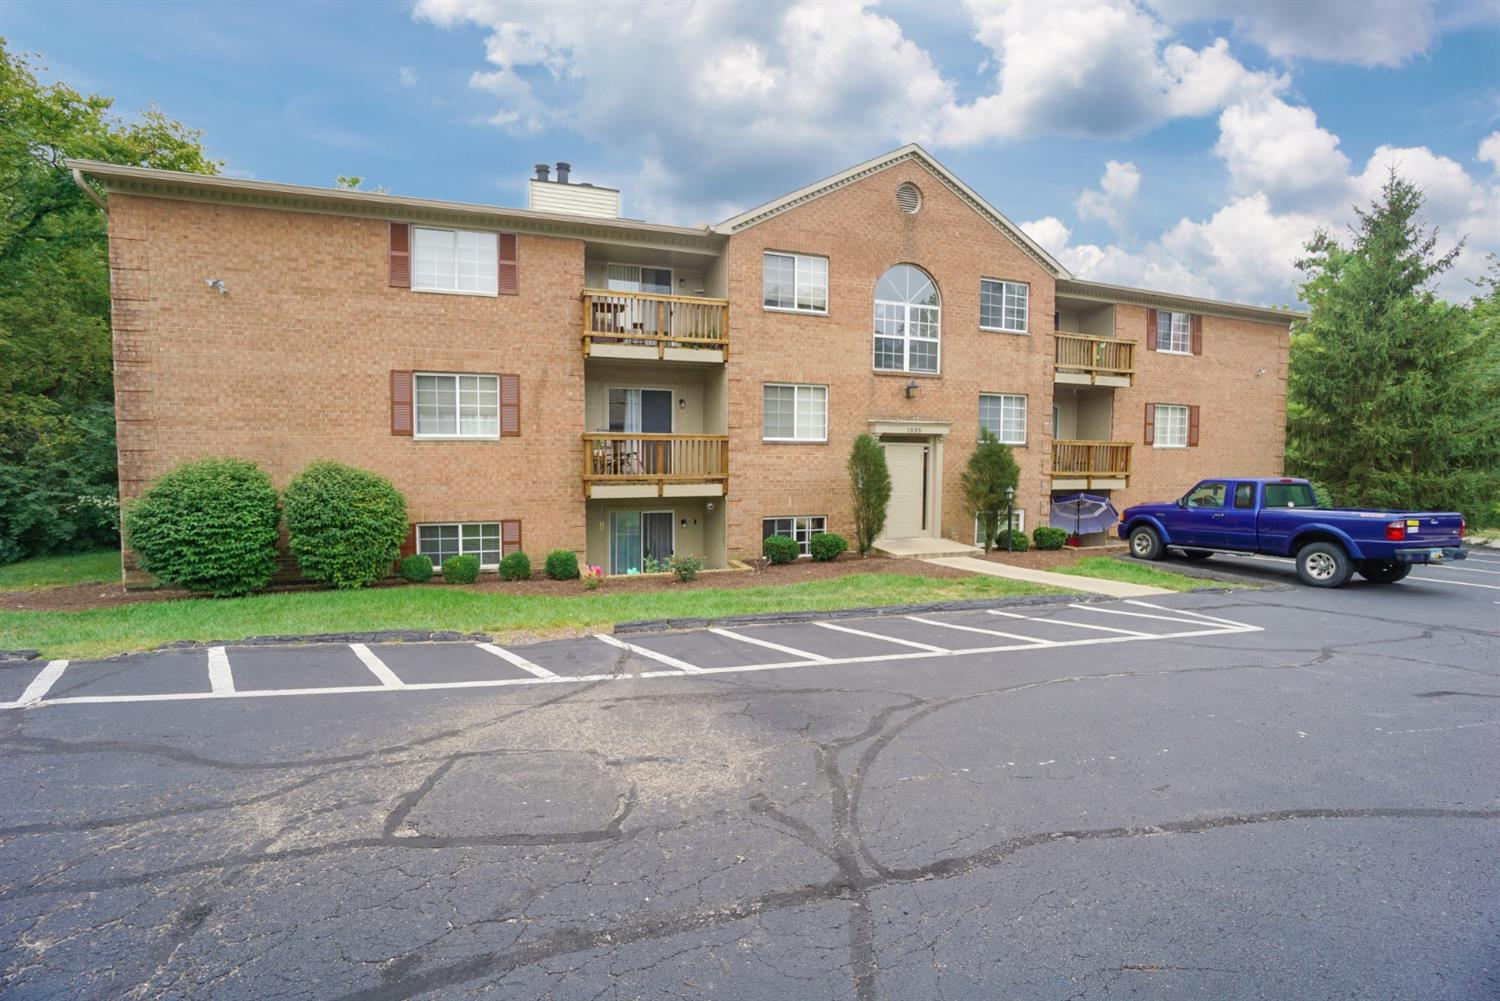 Property for sale at 1535 Gelhot Drive Unit: 147, Fairfield,  Ohio 45014